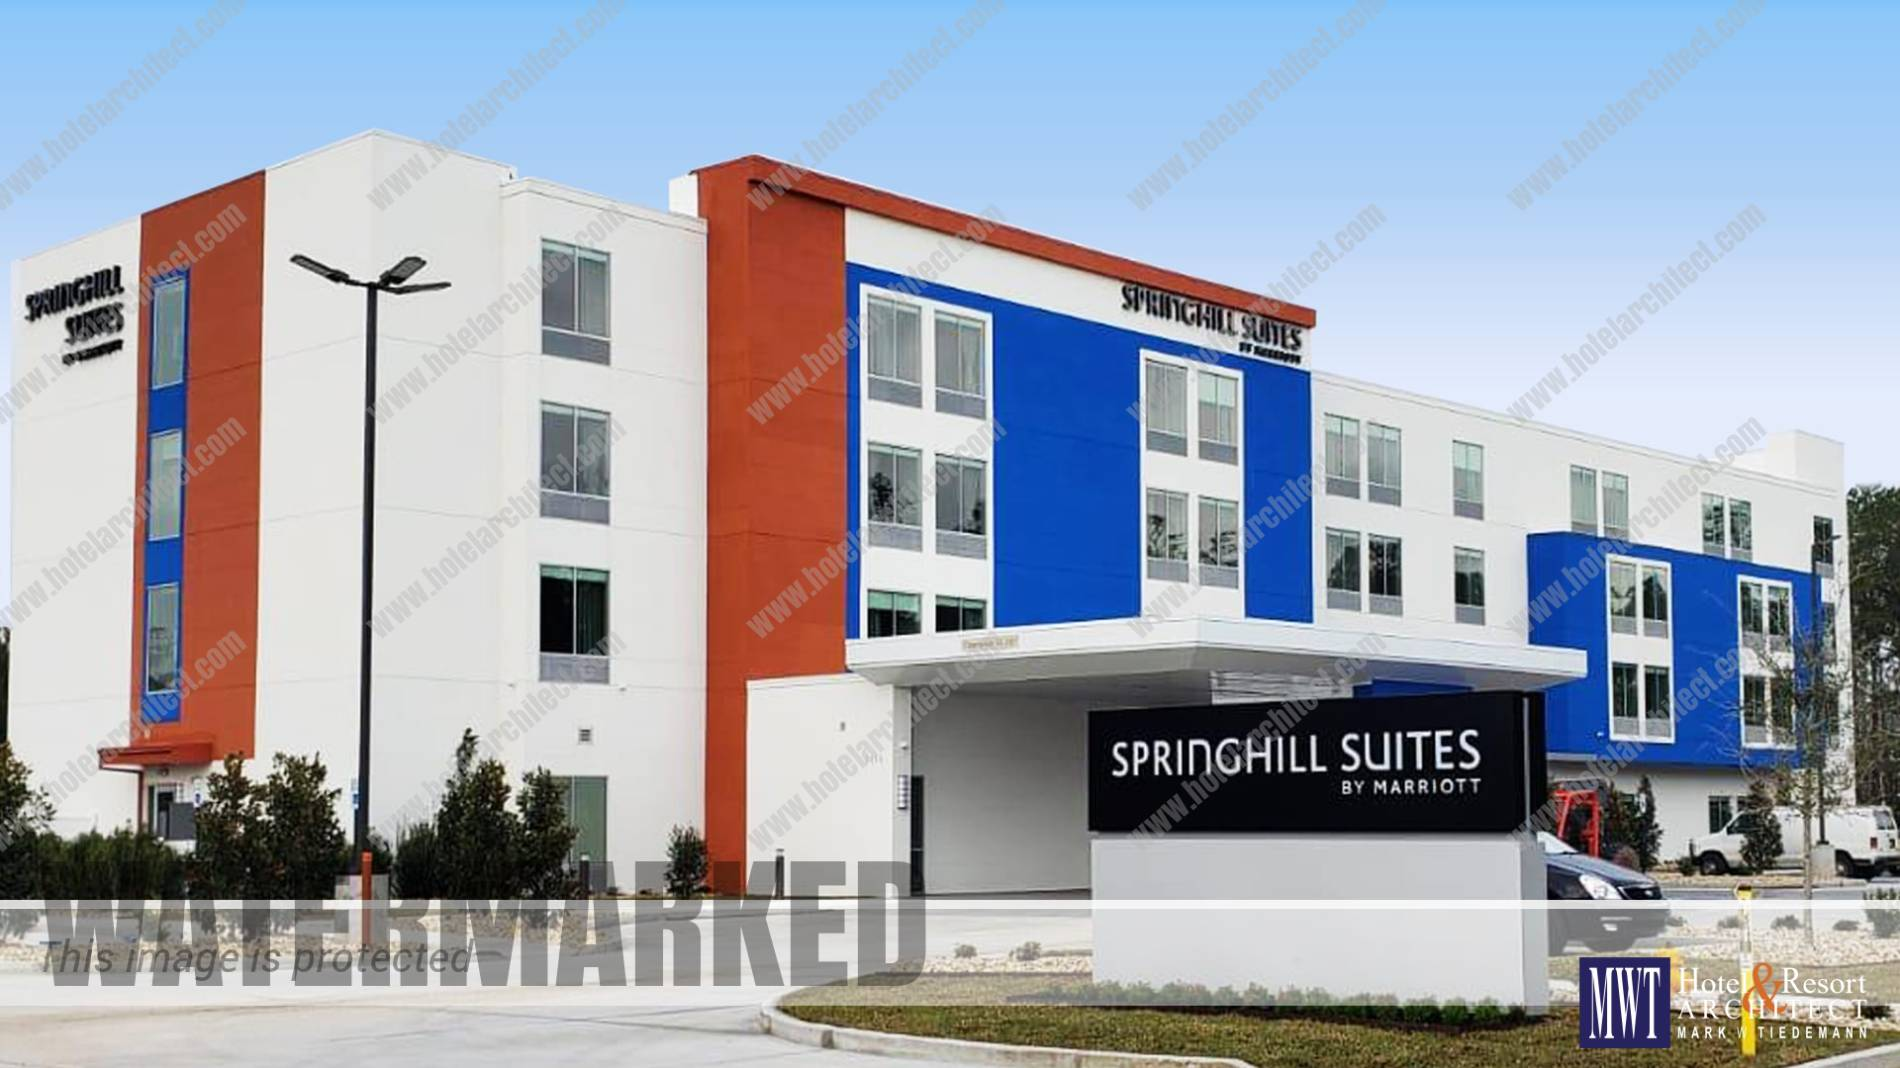 SPRINGHILL SUITES BY MARRIOTT - SLIDELL LA